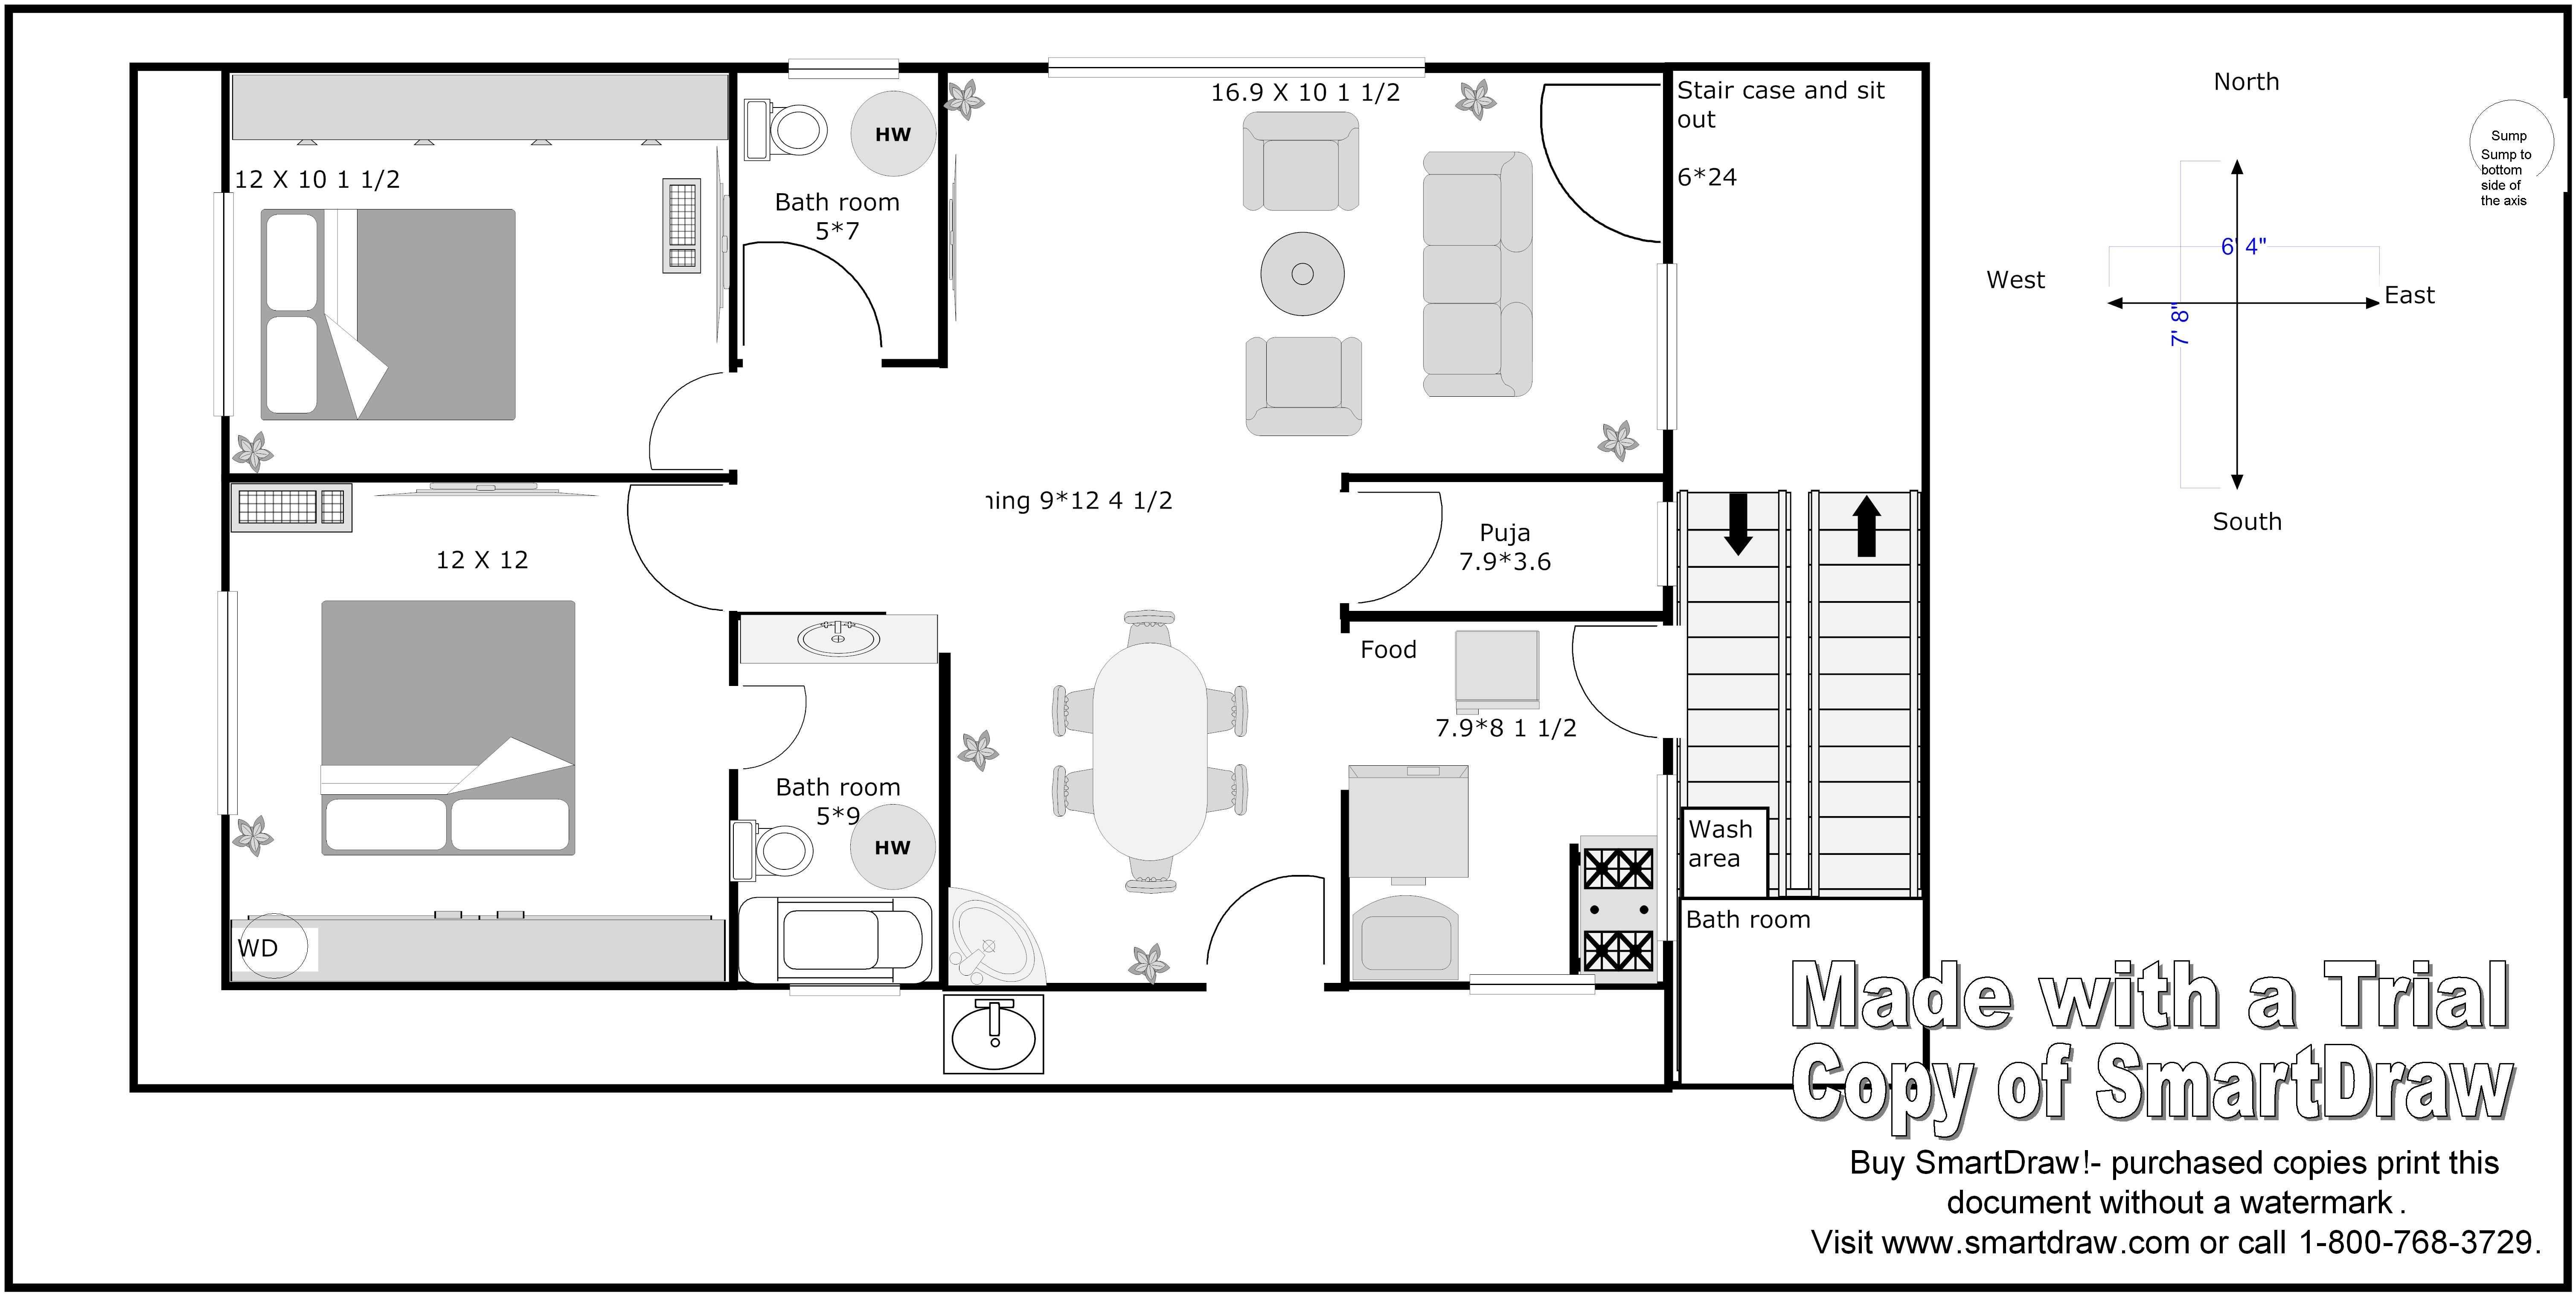 North Facing House Vastu Plan http://www.gharexpert.com/Forum/Nood-in-vastu-Correct-suggestmy-house-plan/